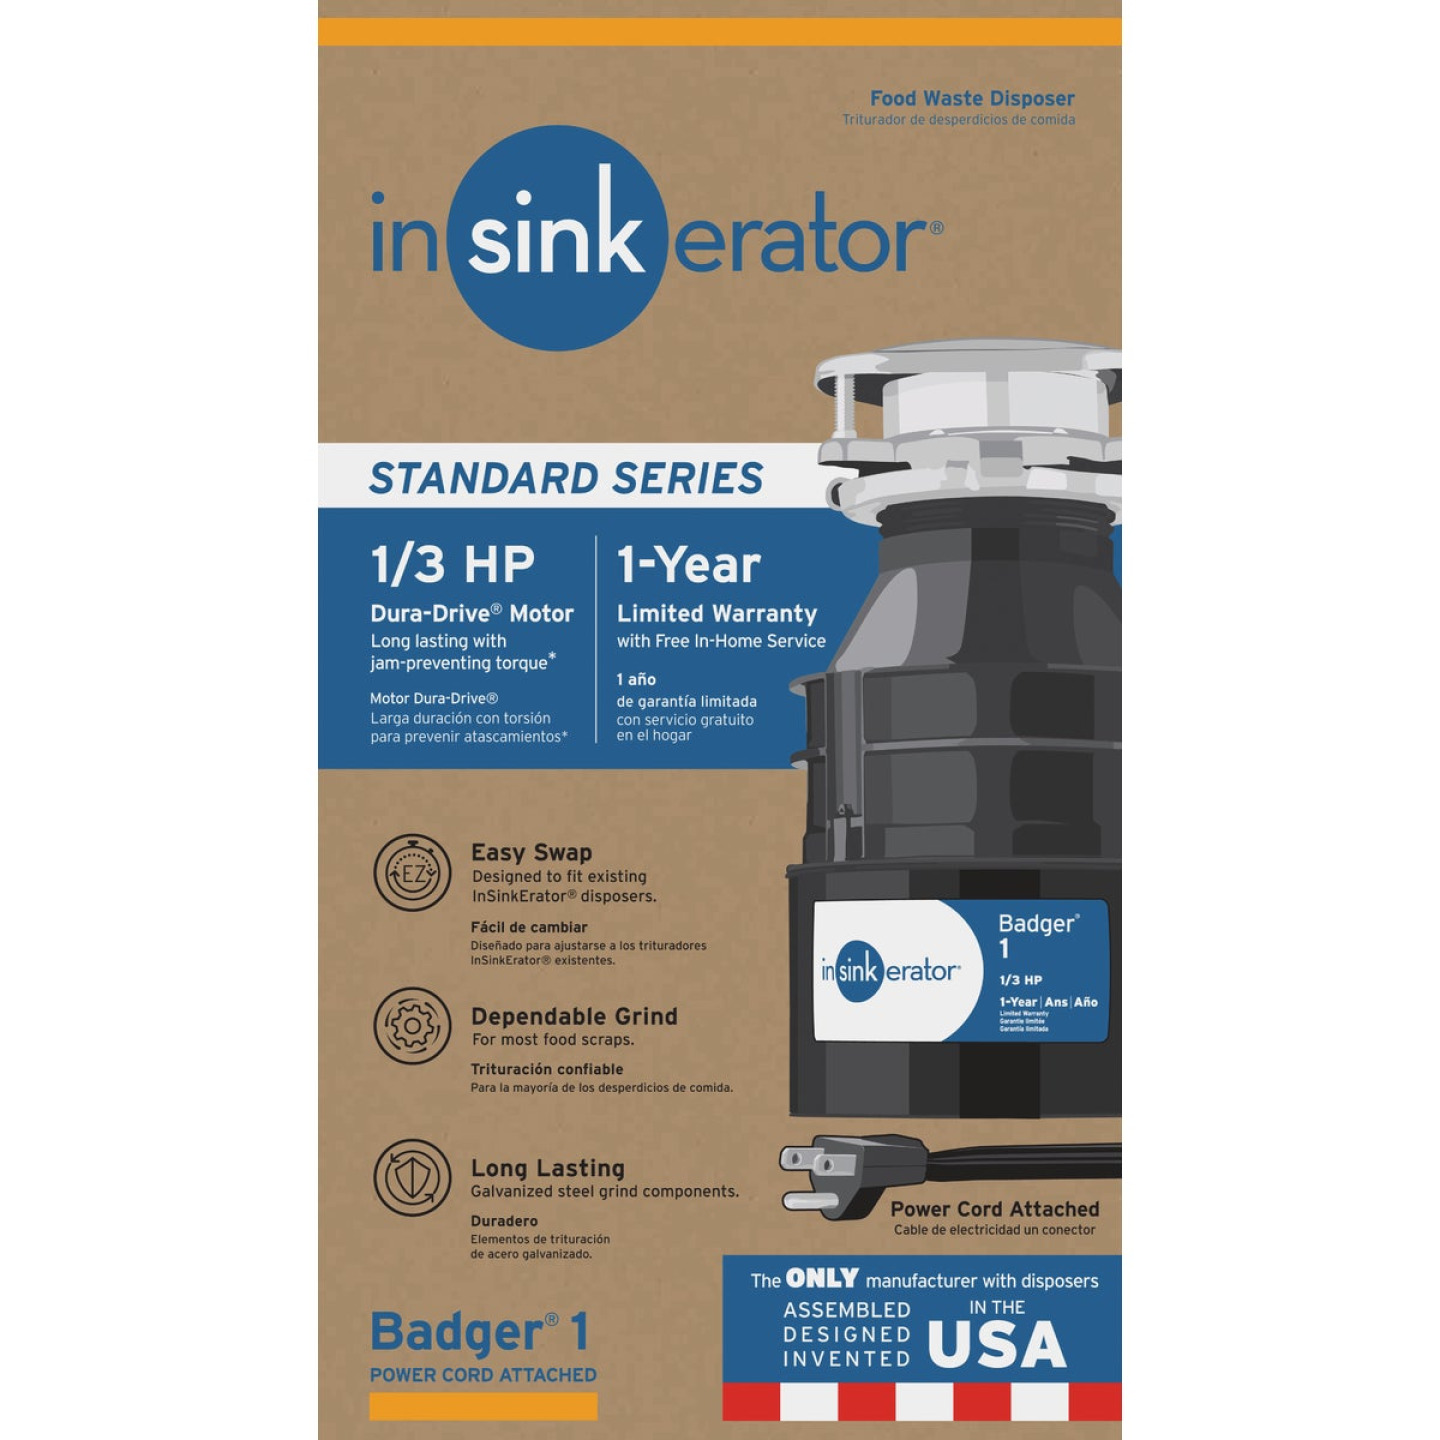 Insinkerator 1/3 HP Badger 1 Garbage Disposer with Power Cord, 1 Year Warranty Image 1